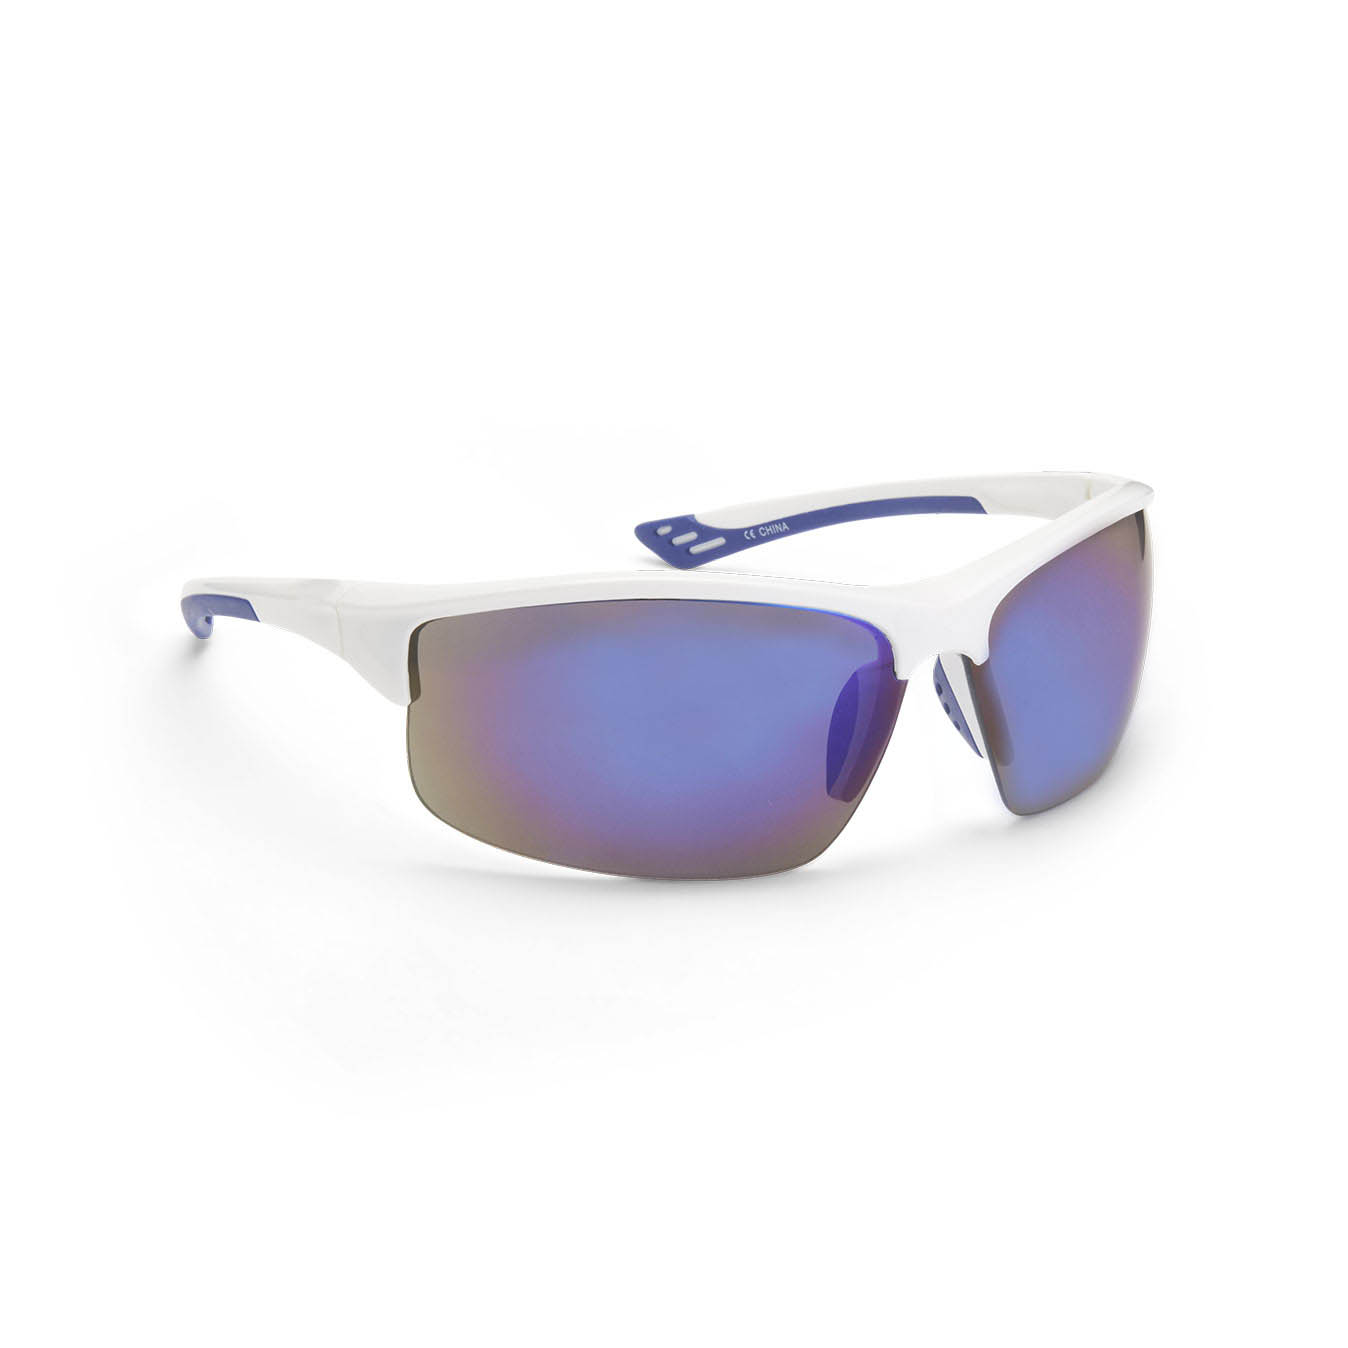 Arsenal Optix Transit Sunglasses